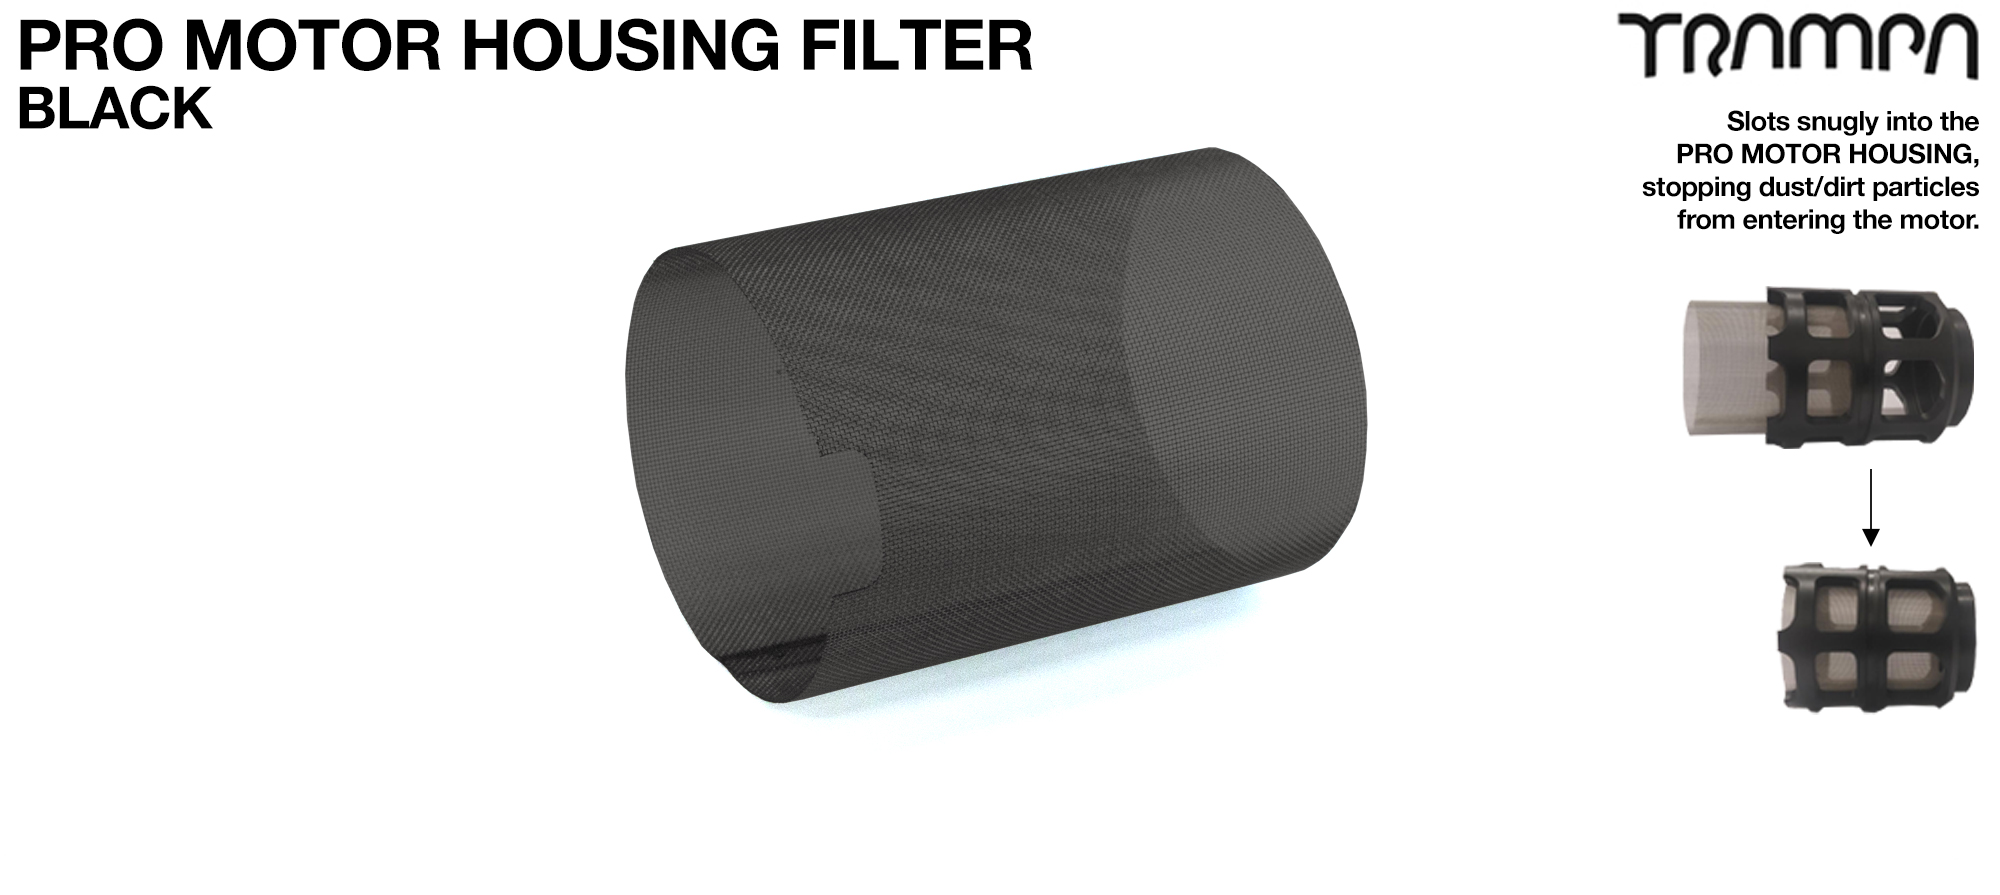 MkII Motor Protection Cover Stainless Steel MESH FILTER - BLACK